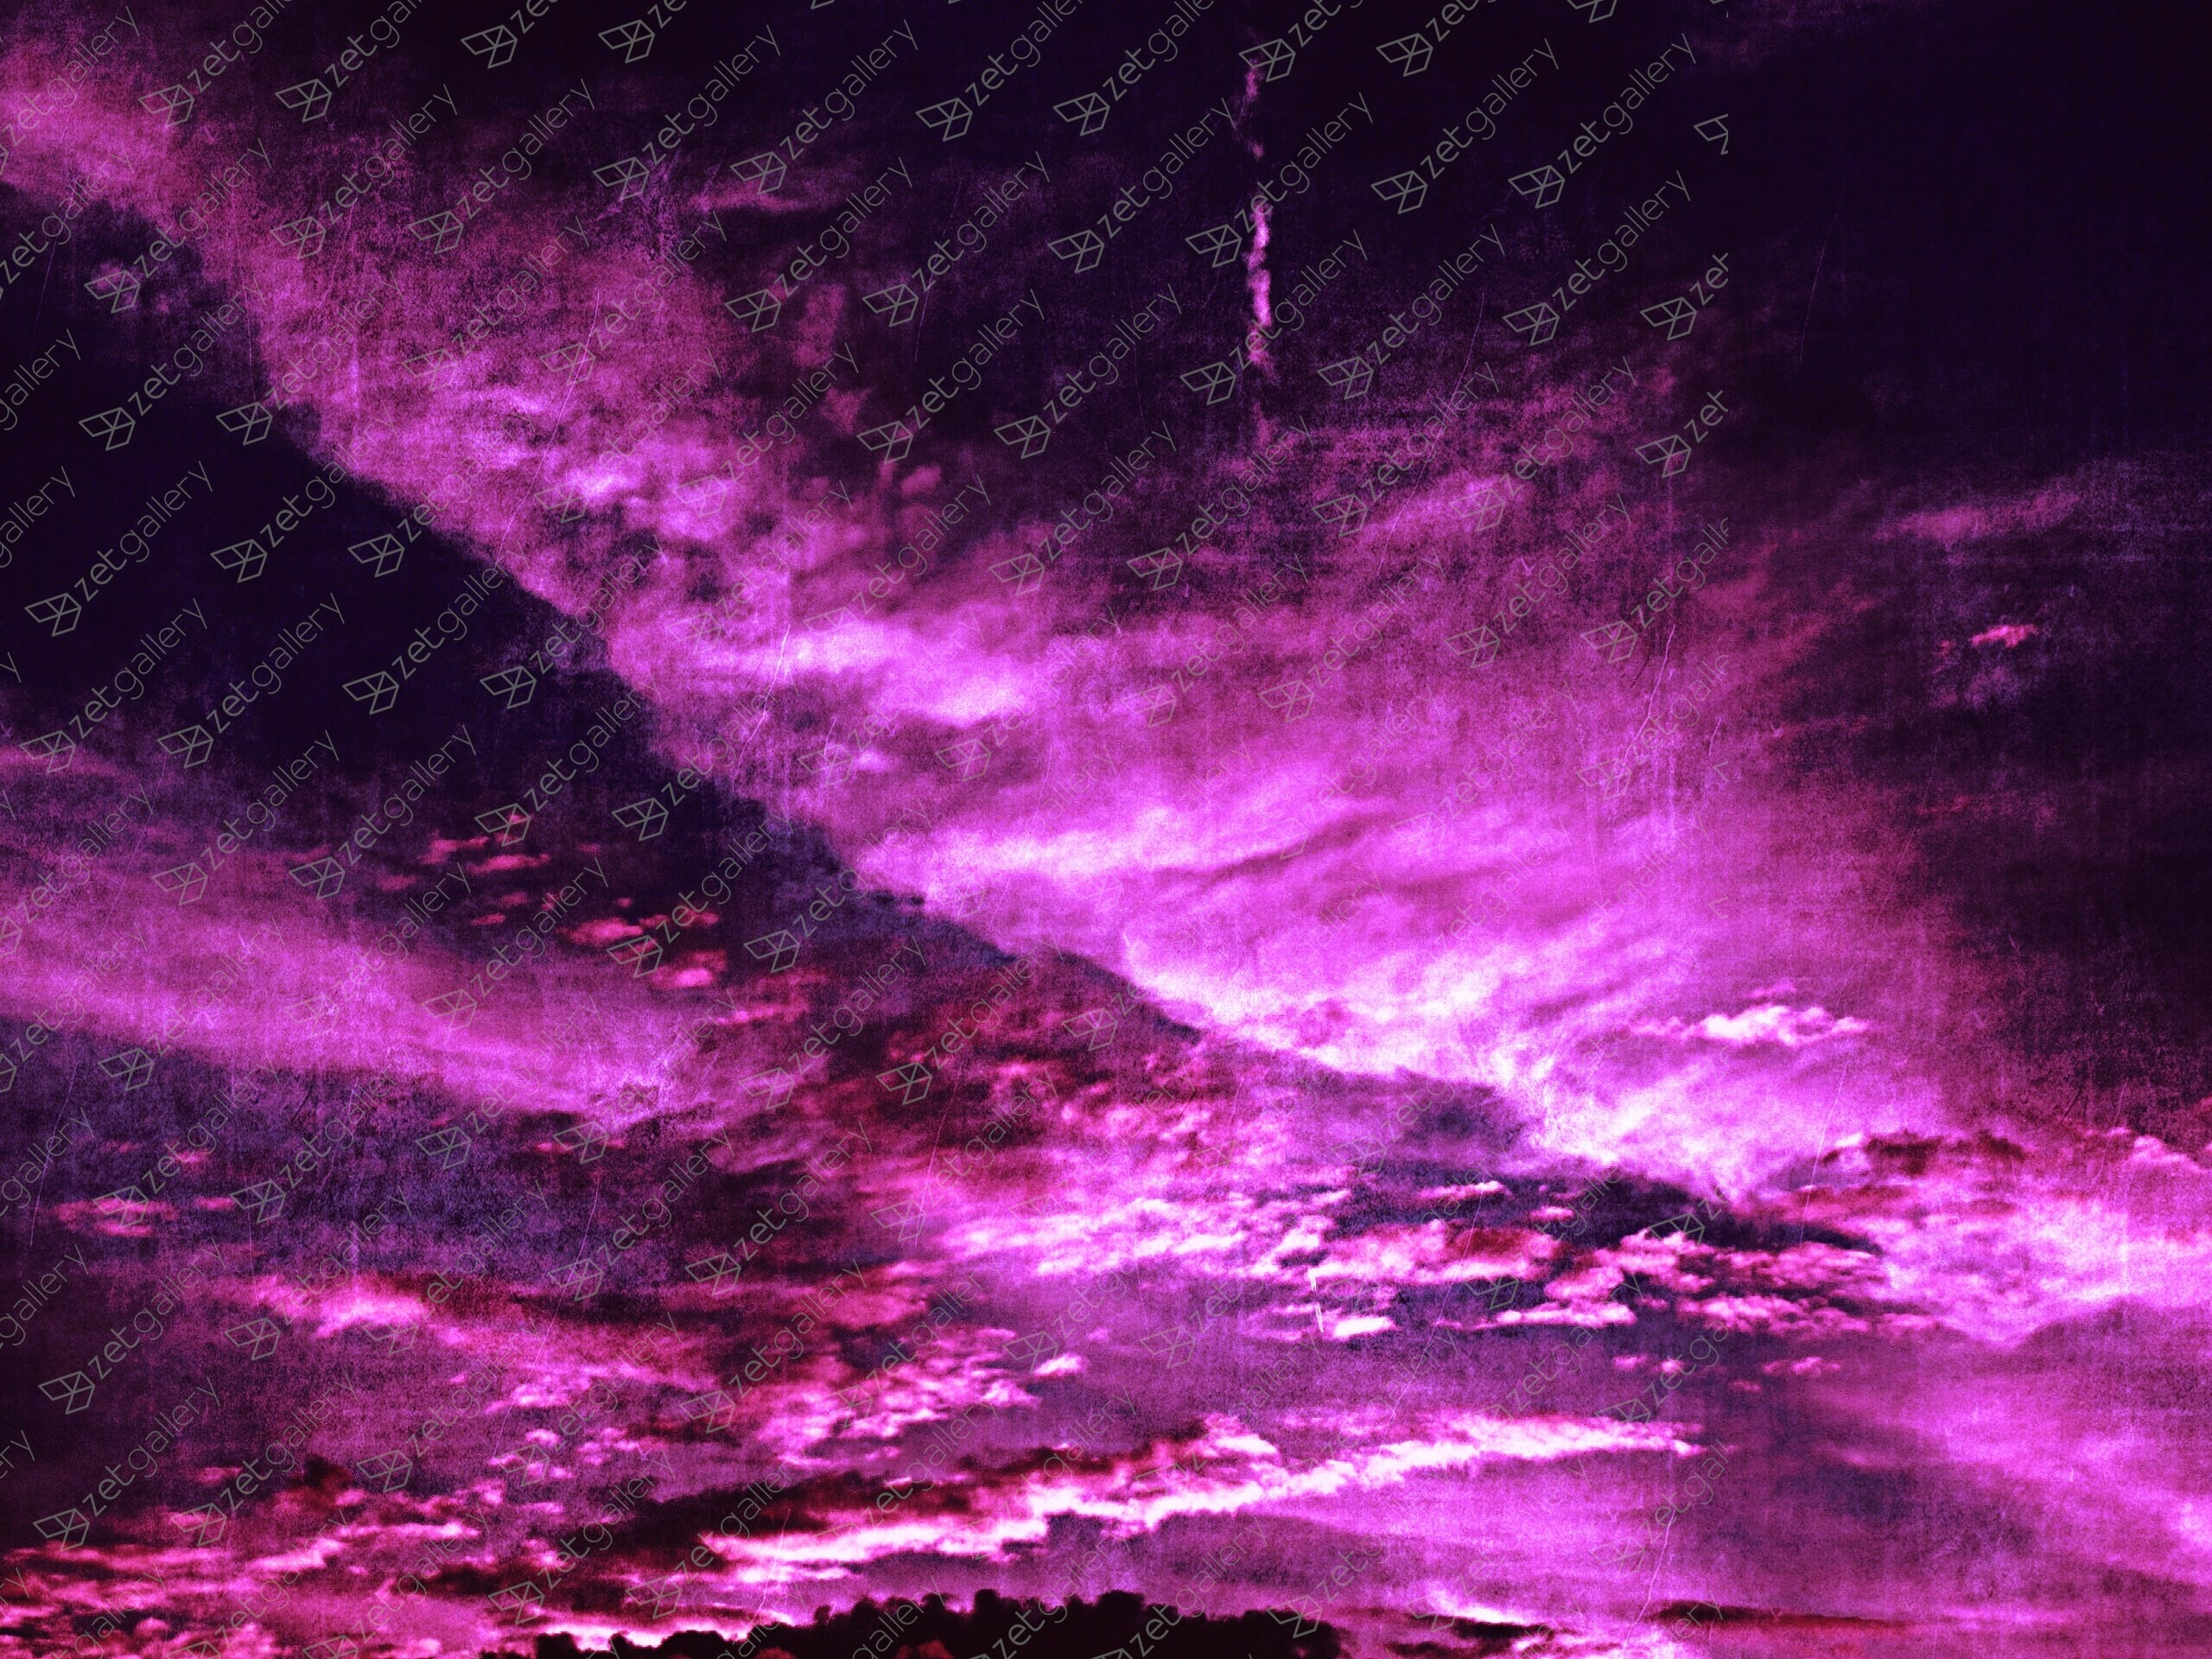 #145 from dig up collection, original Abstract Digital Photography by Magdalena Kaczmarczyk